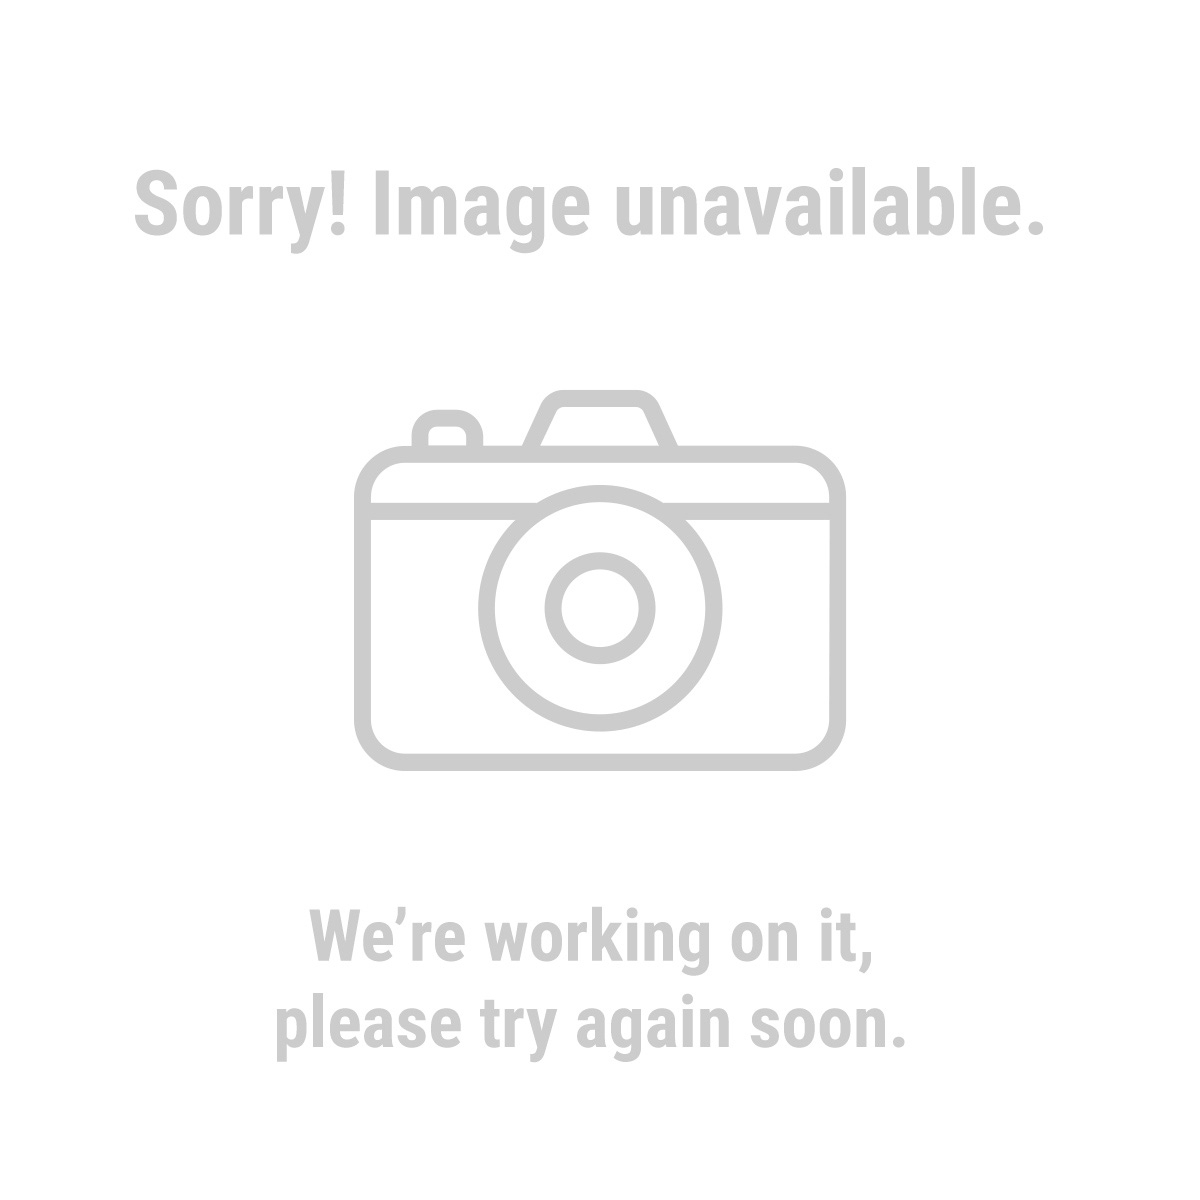 "Chicago Electric Welding 42919 0.030"" ER70S-6 Carbon Steel Welding Wire, 10 Lb. Roll"